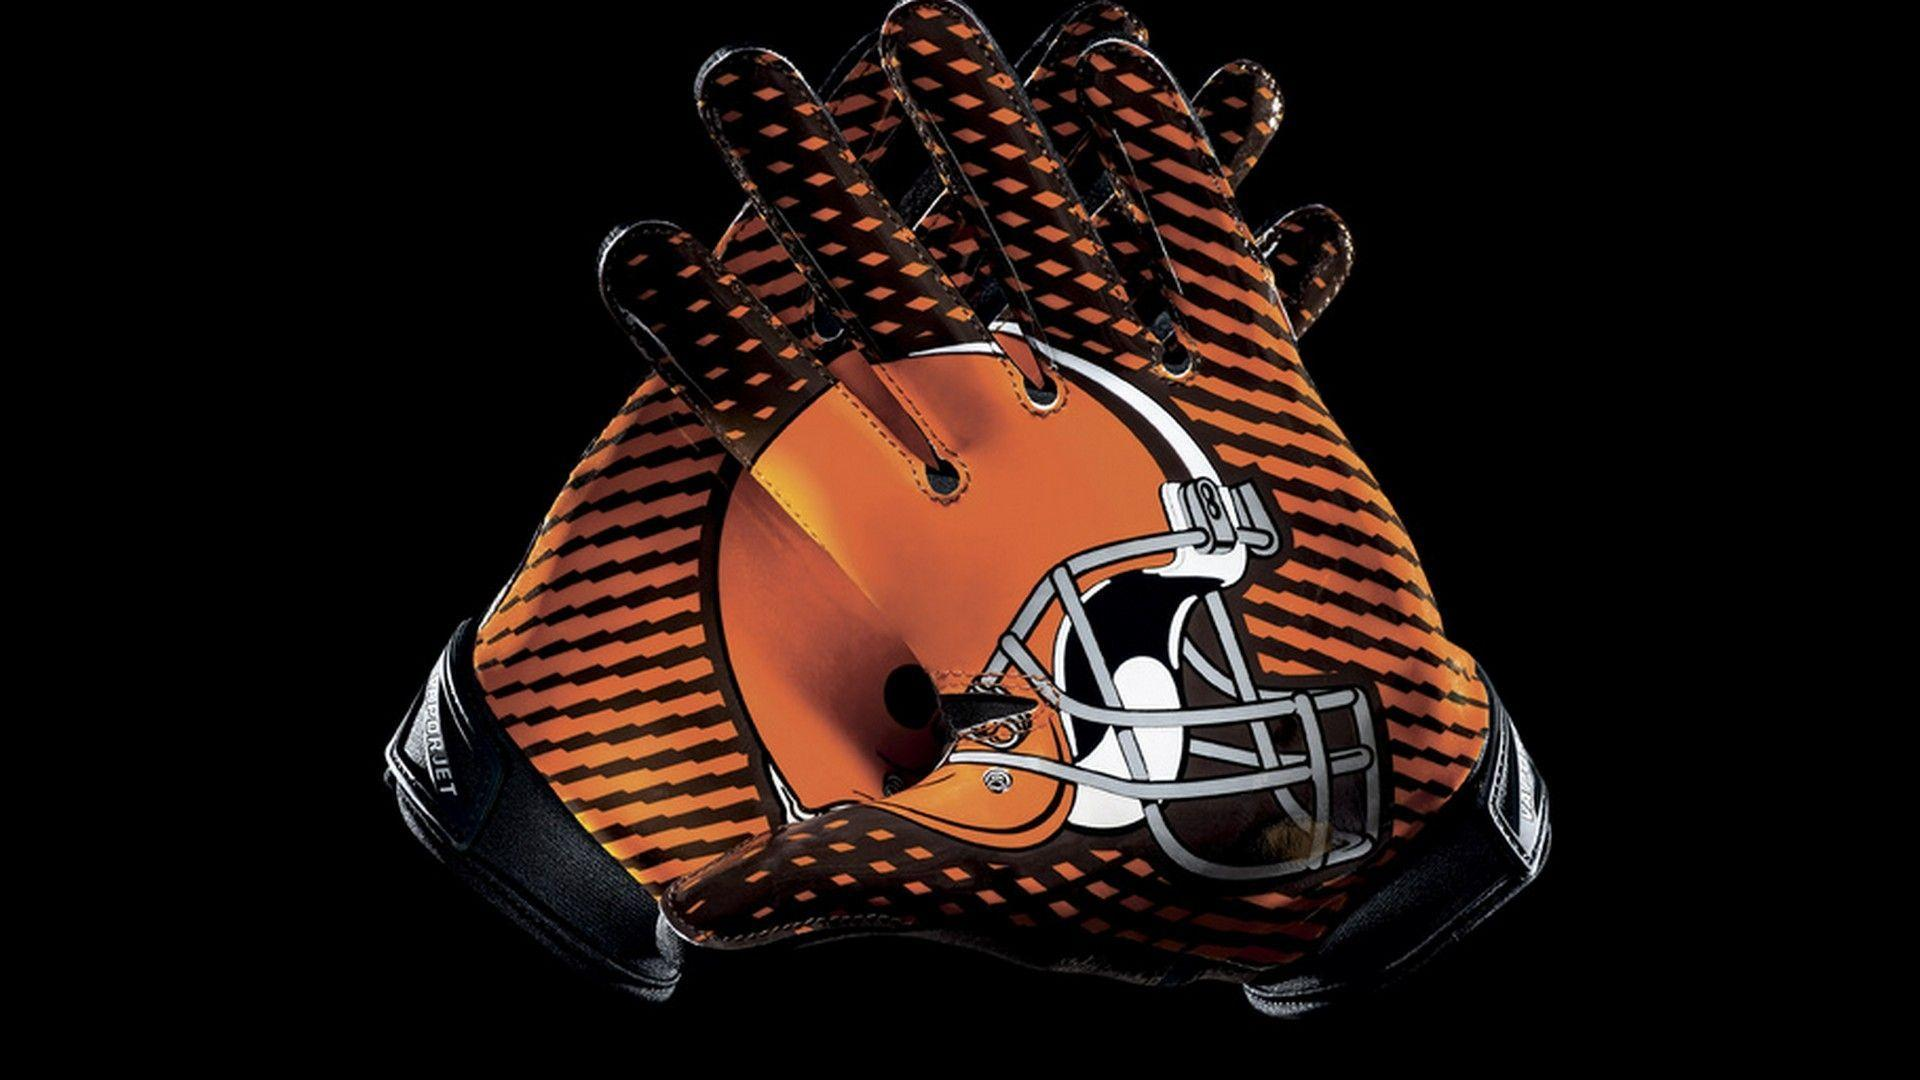 Cleveland Browns For Desktop Wallpaper | Wallpapers | Pinterest ...